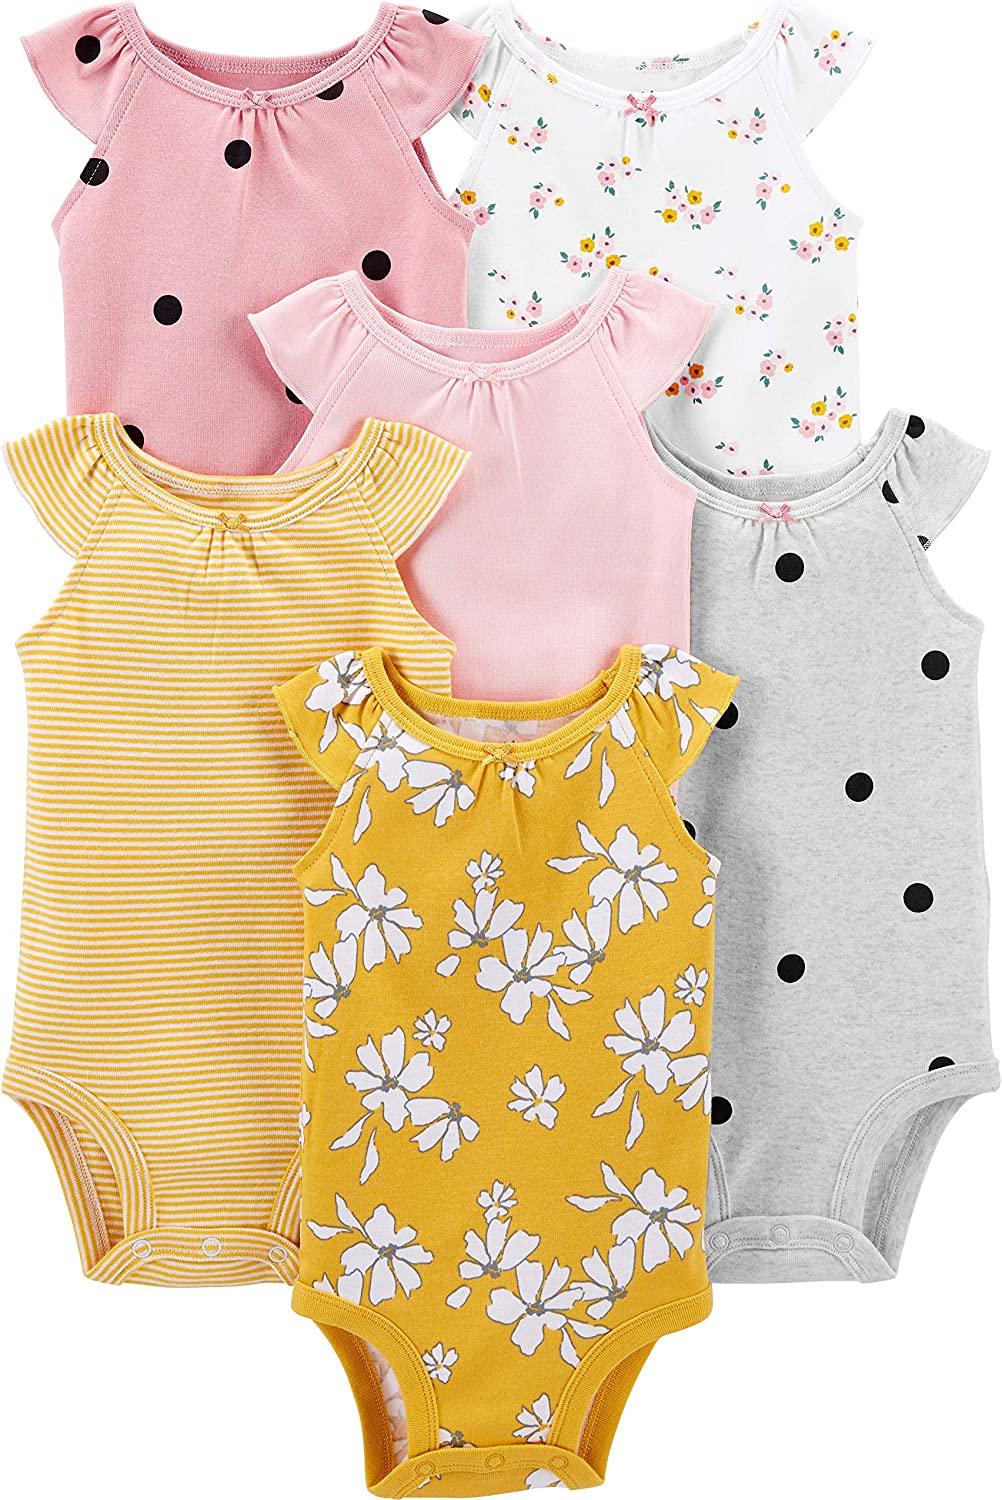 Simple Limited Special Price Joys by Carter's 6-Pack Bodysuit Sleeveless Baby Deluxe